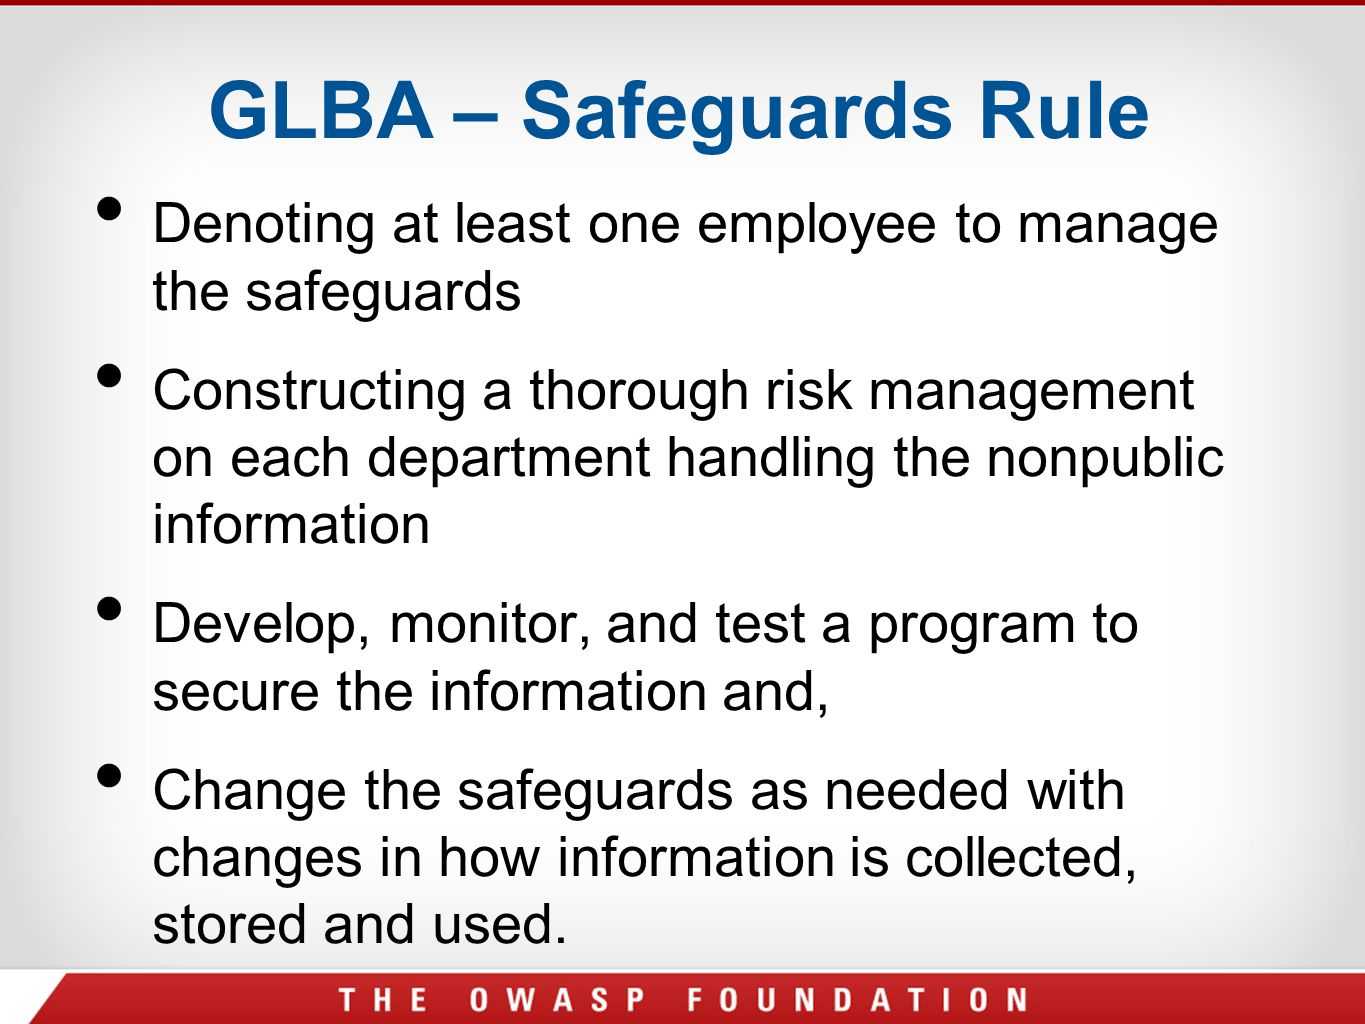 GLBA – Safeguards Rule Denoting at least one employee to manage the safeguards Constructing a thorough risk management on each department handling the